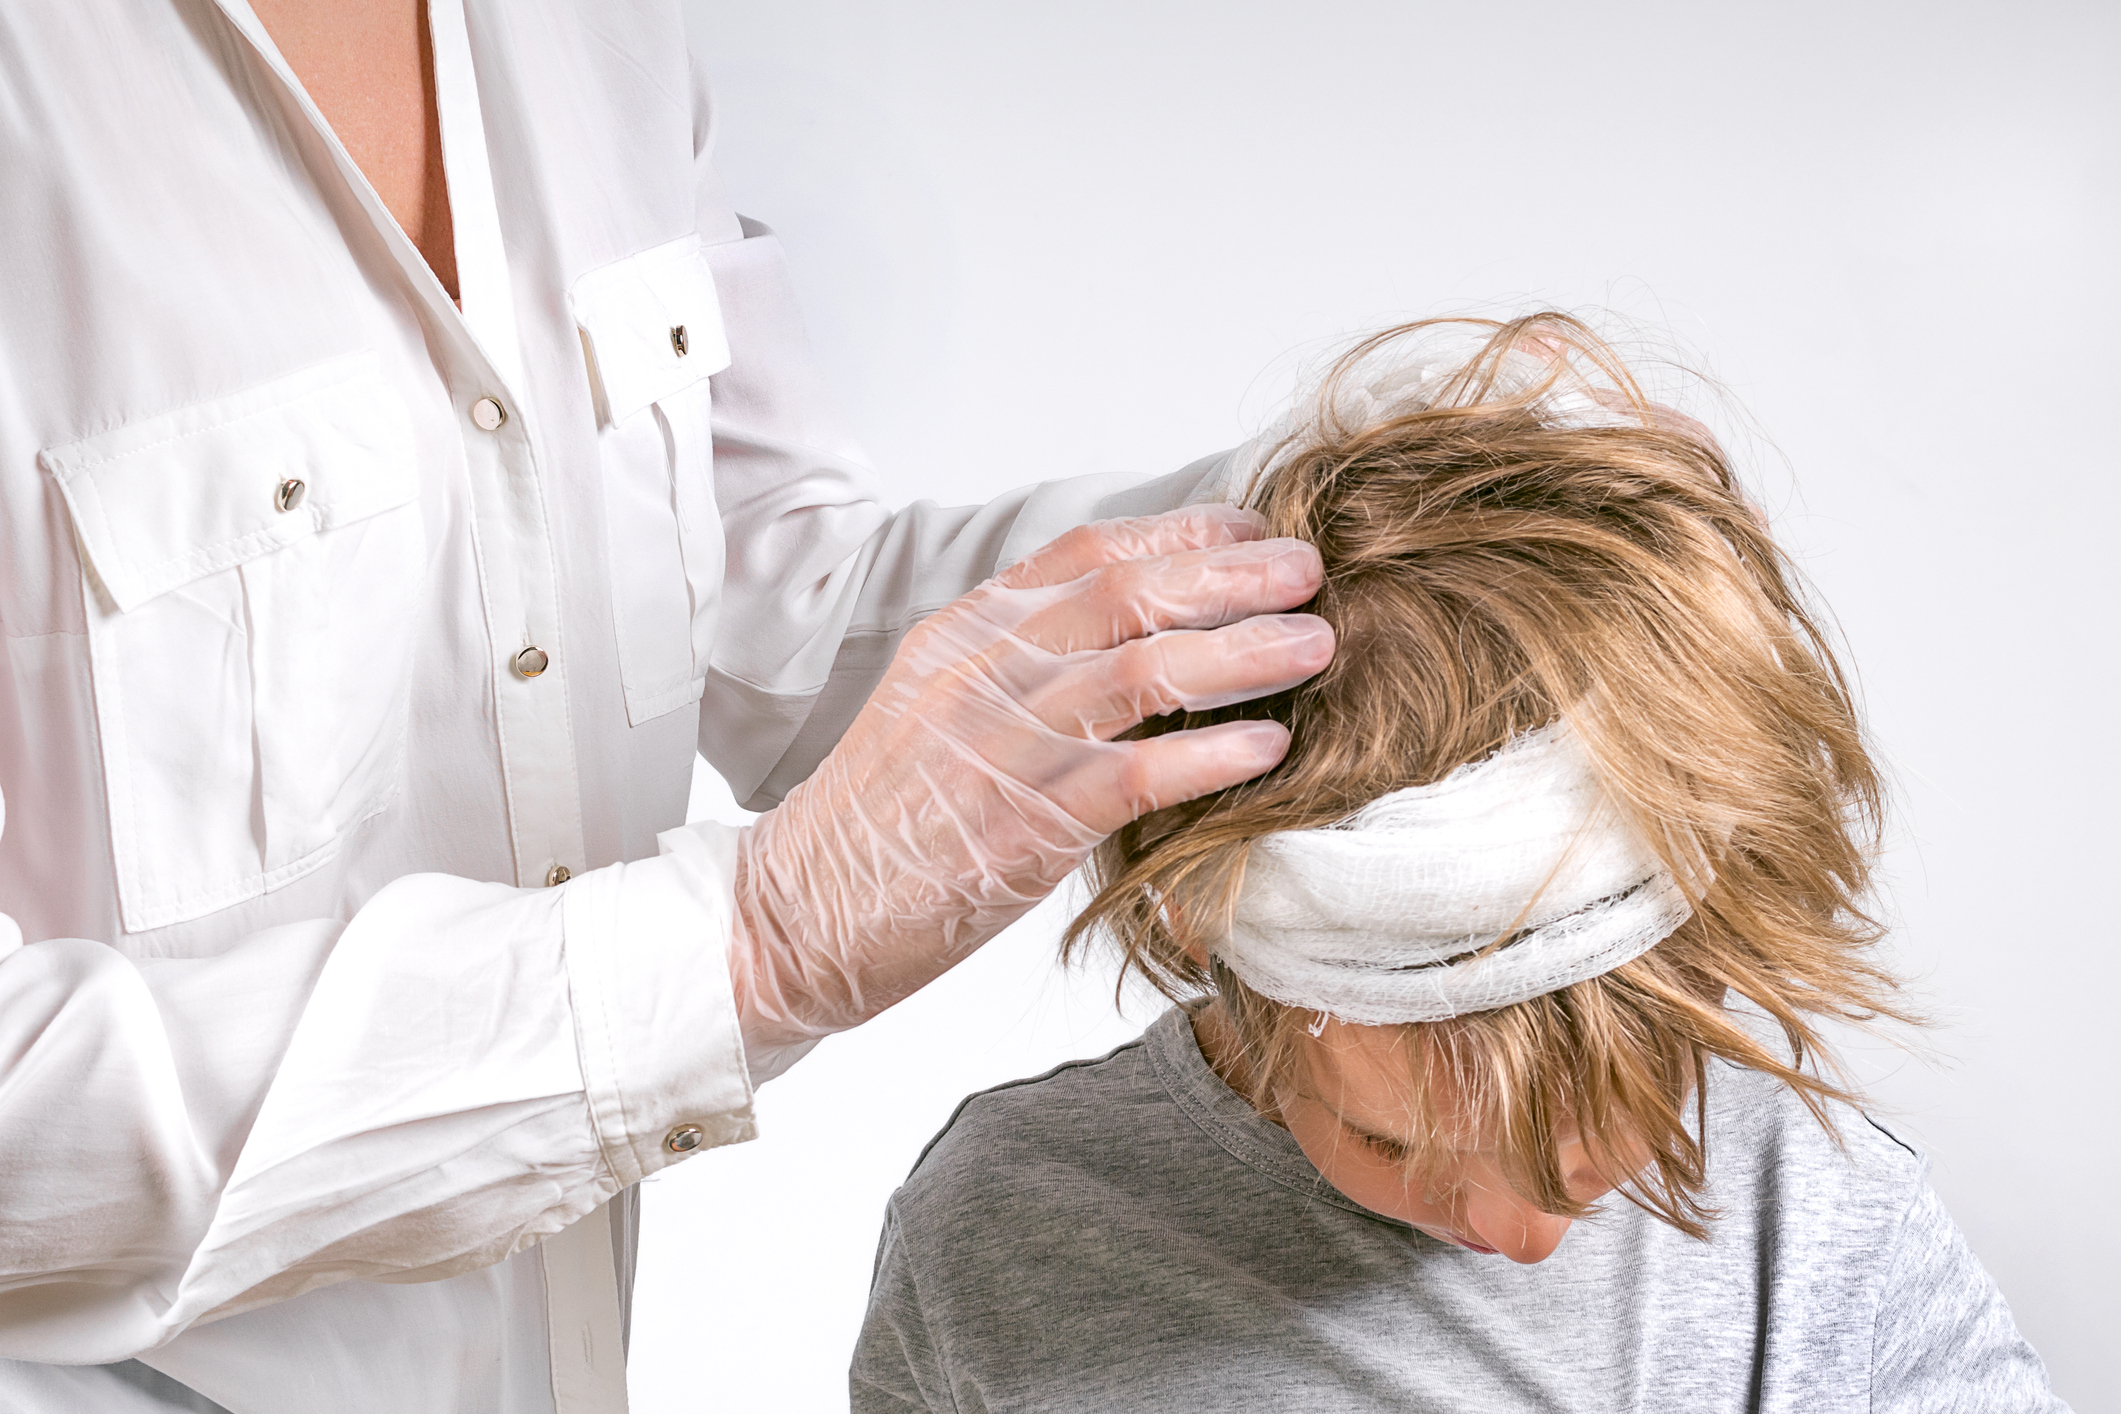 A doctor examines a young boy's head. Image credit: iStock